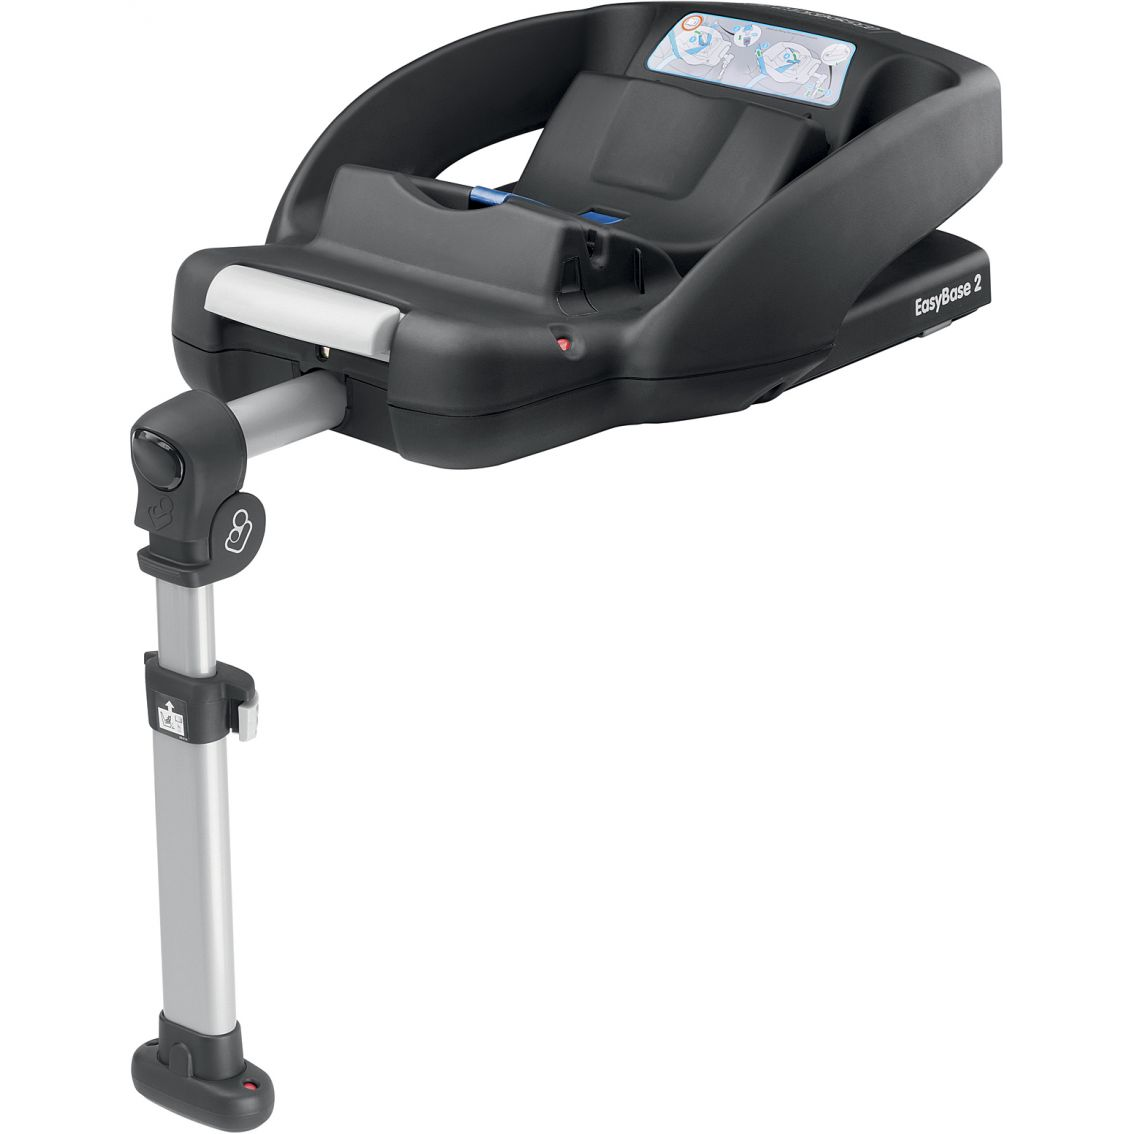 maxi cosi easybase 2 car seat base available at w h watts pram shop. Black Bedroom Furniture Sets. Home Design Ideas